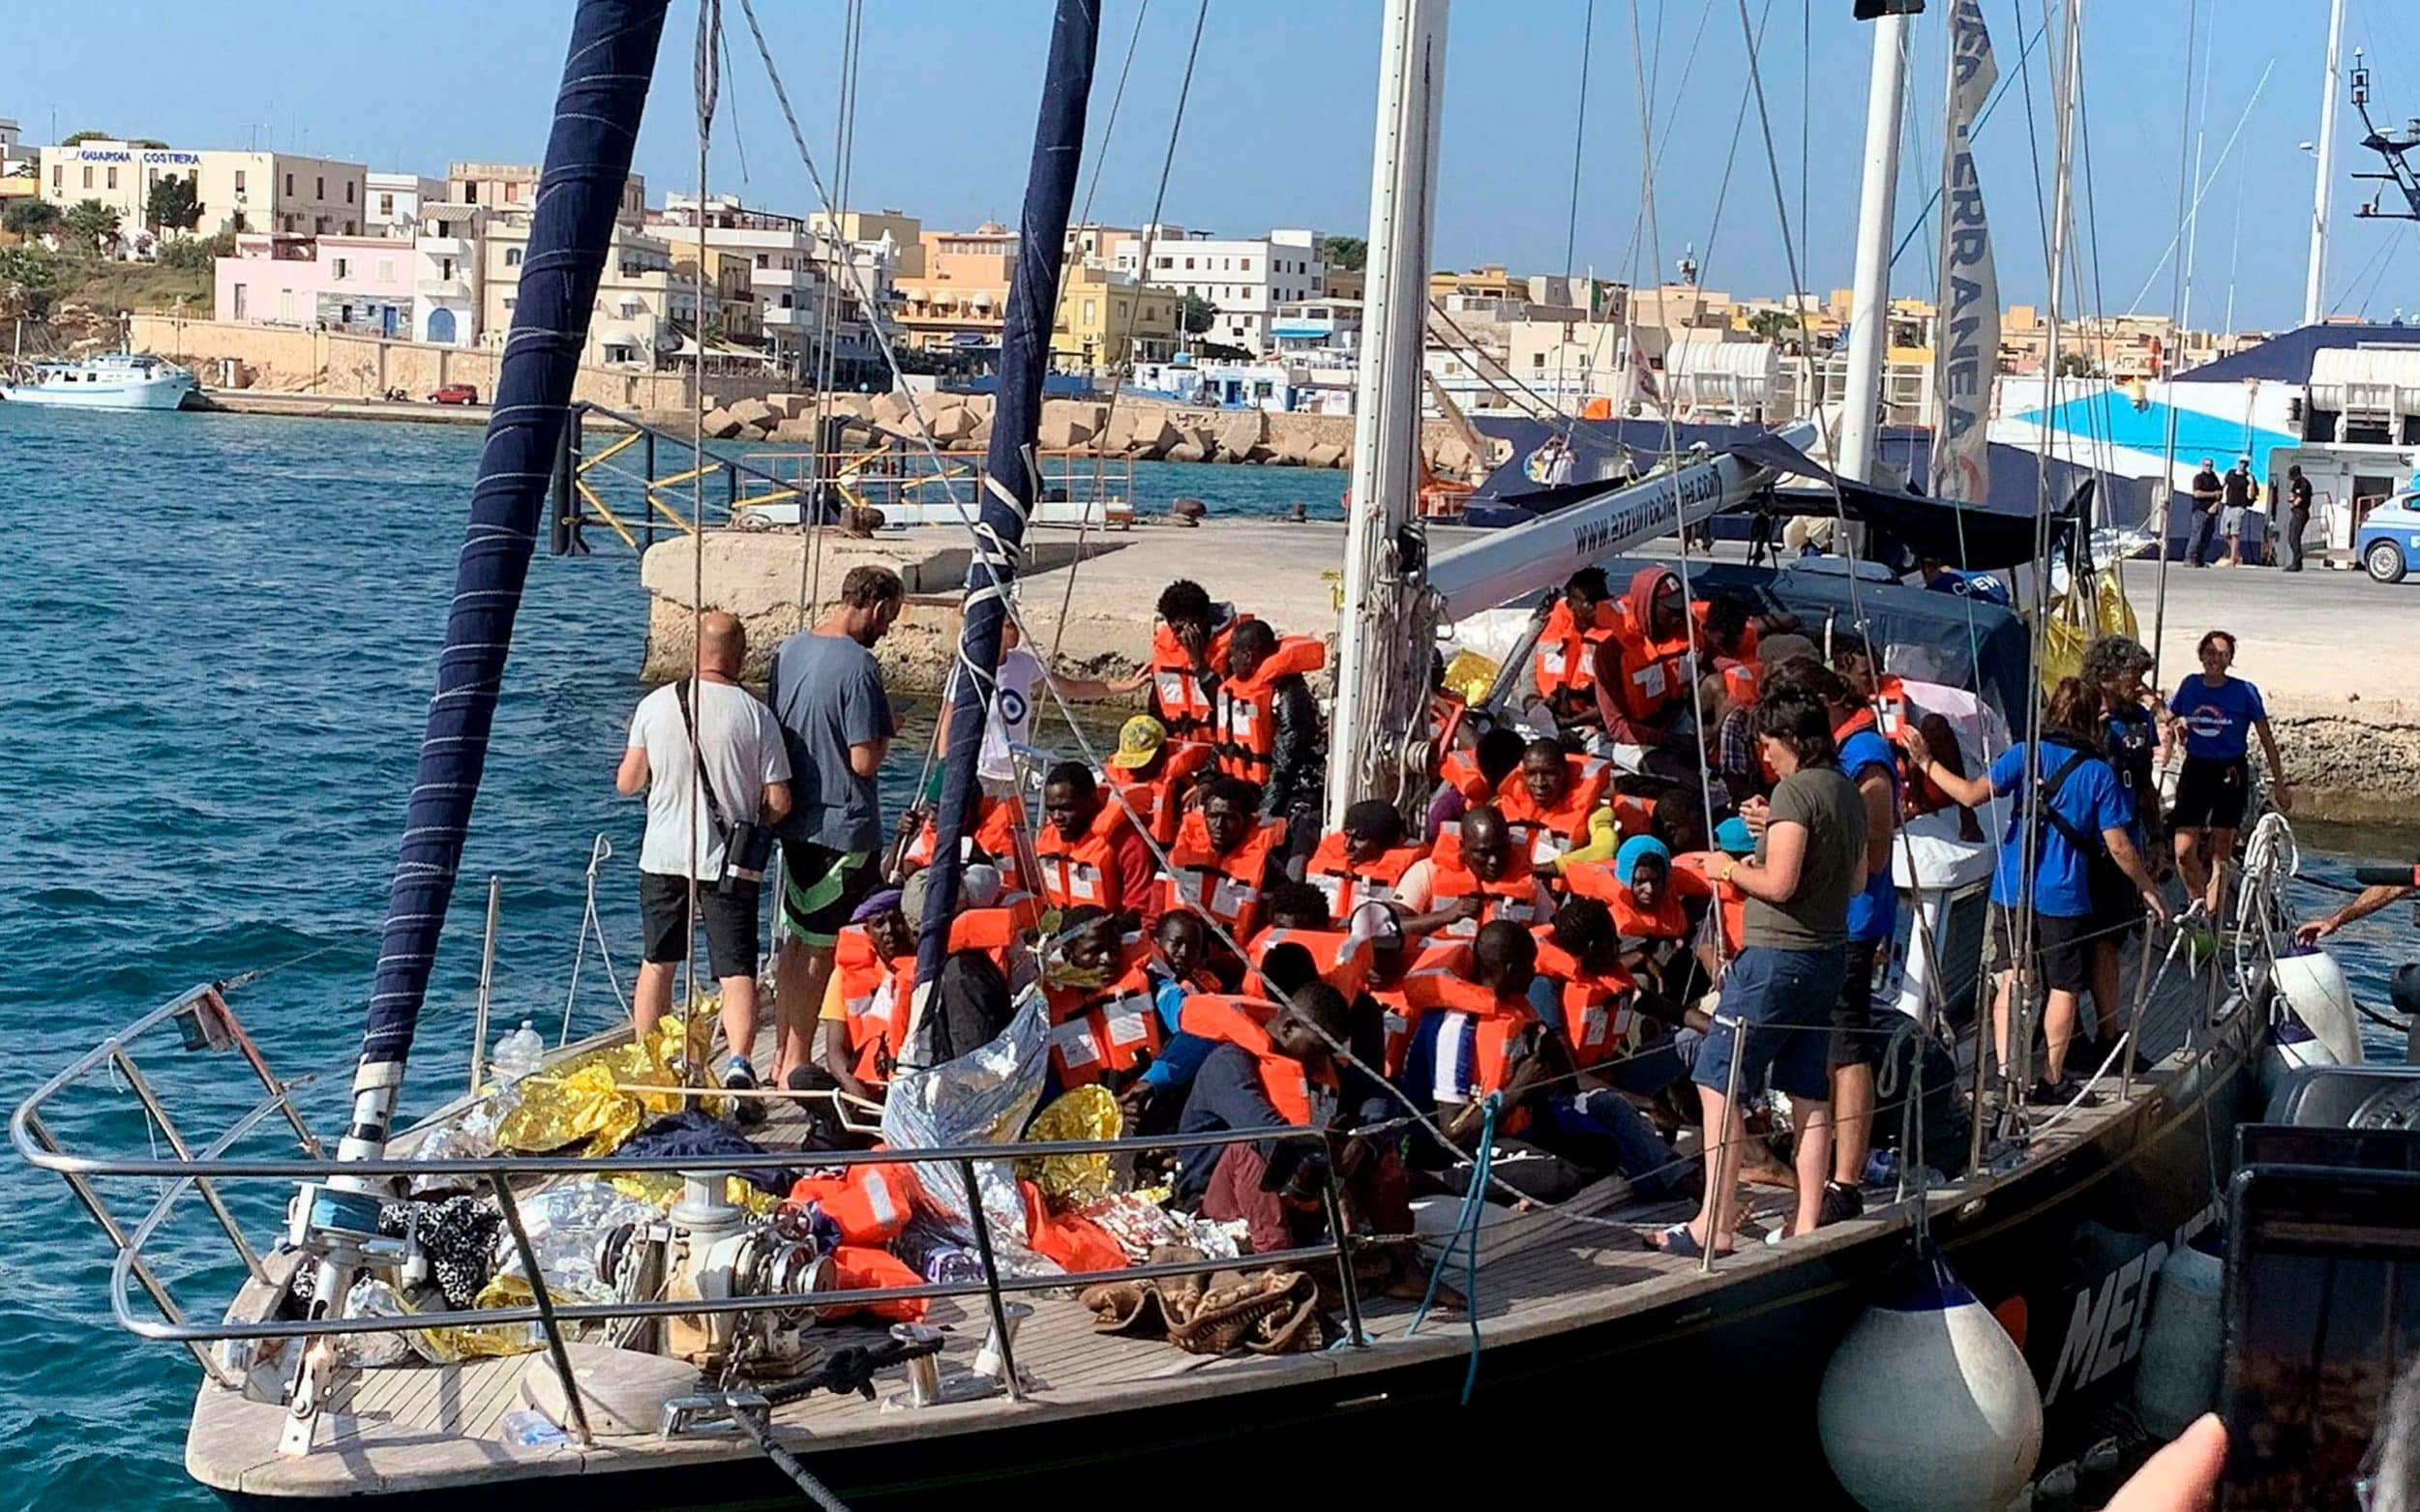 Italian captain under investigation for rescuing 41 shipwrecked migrants